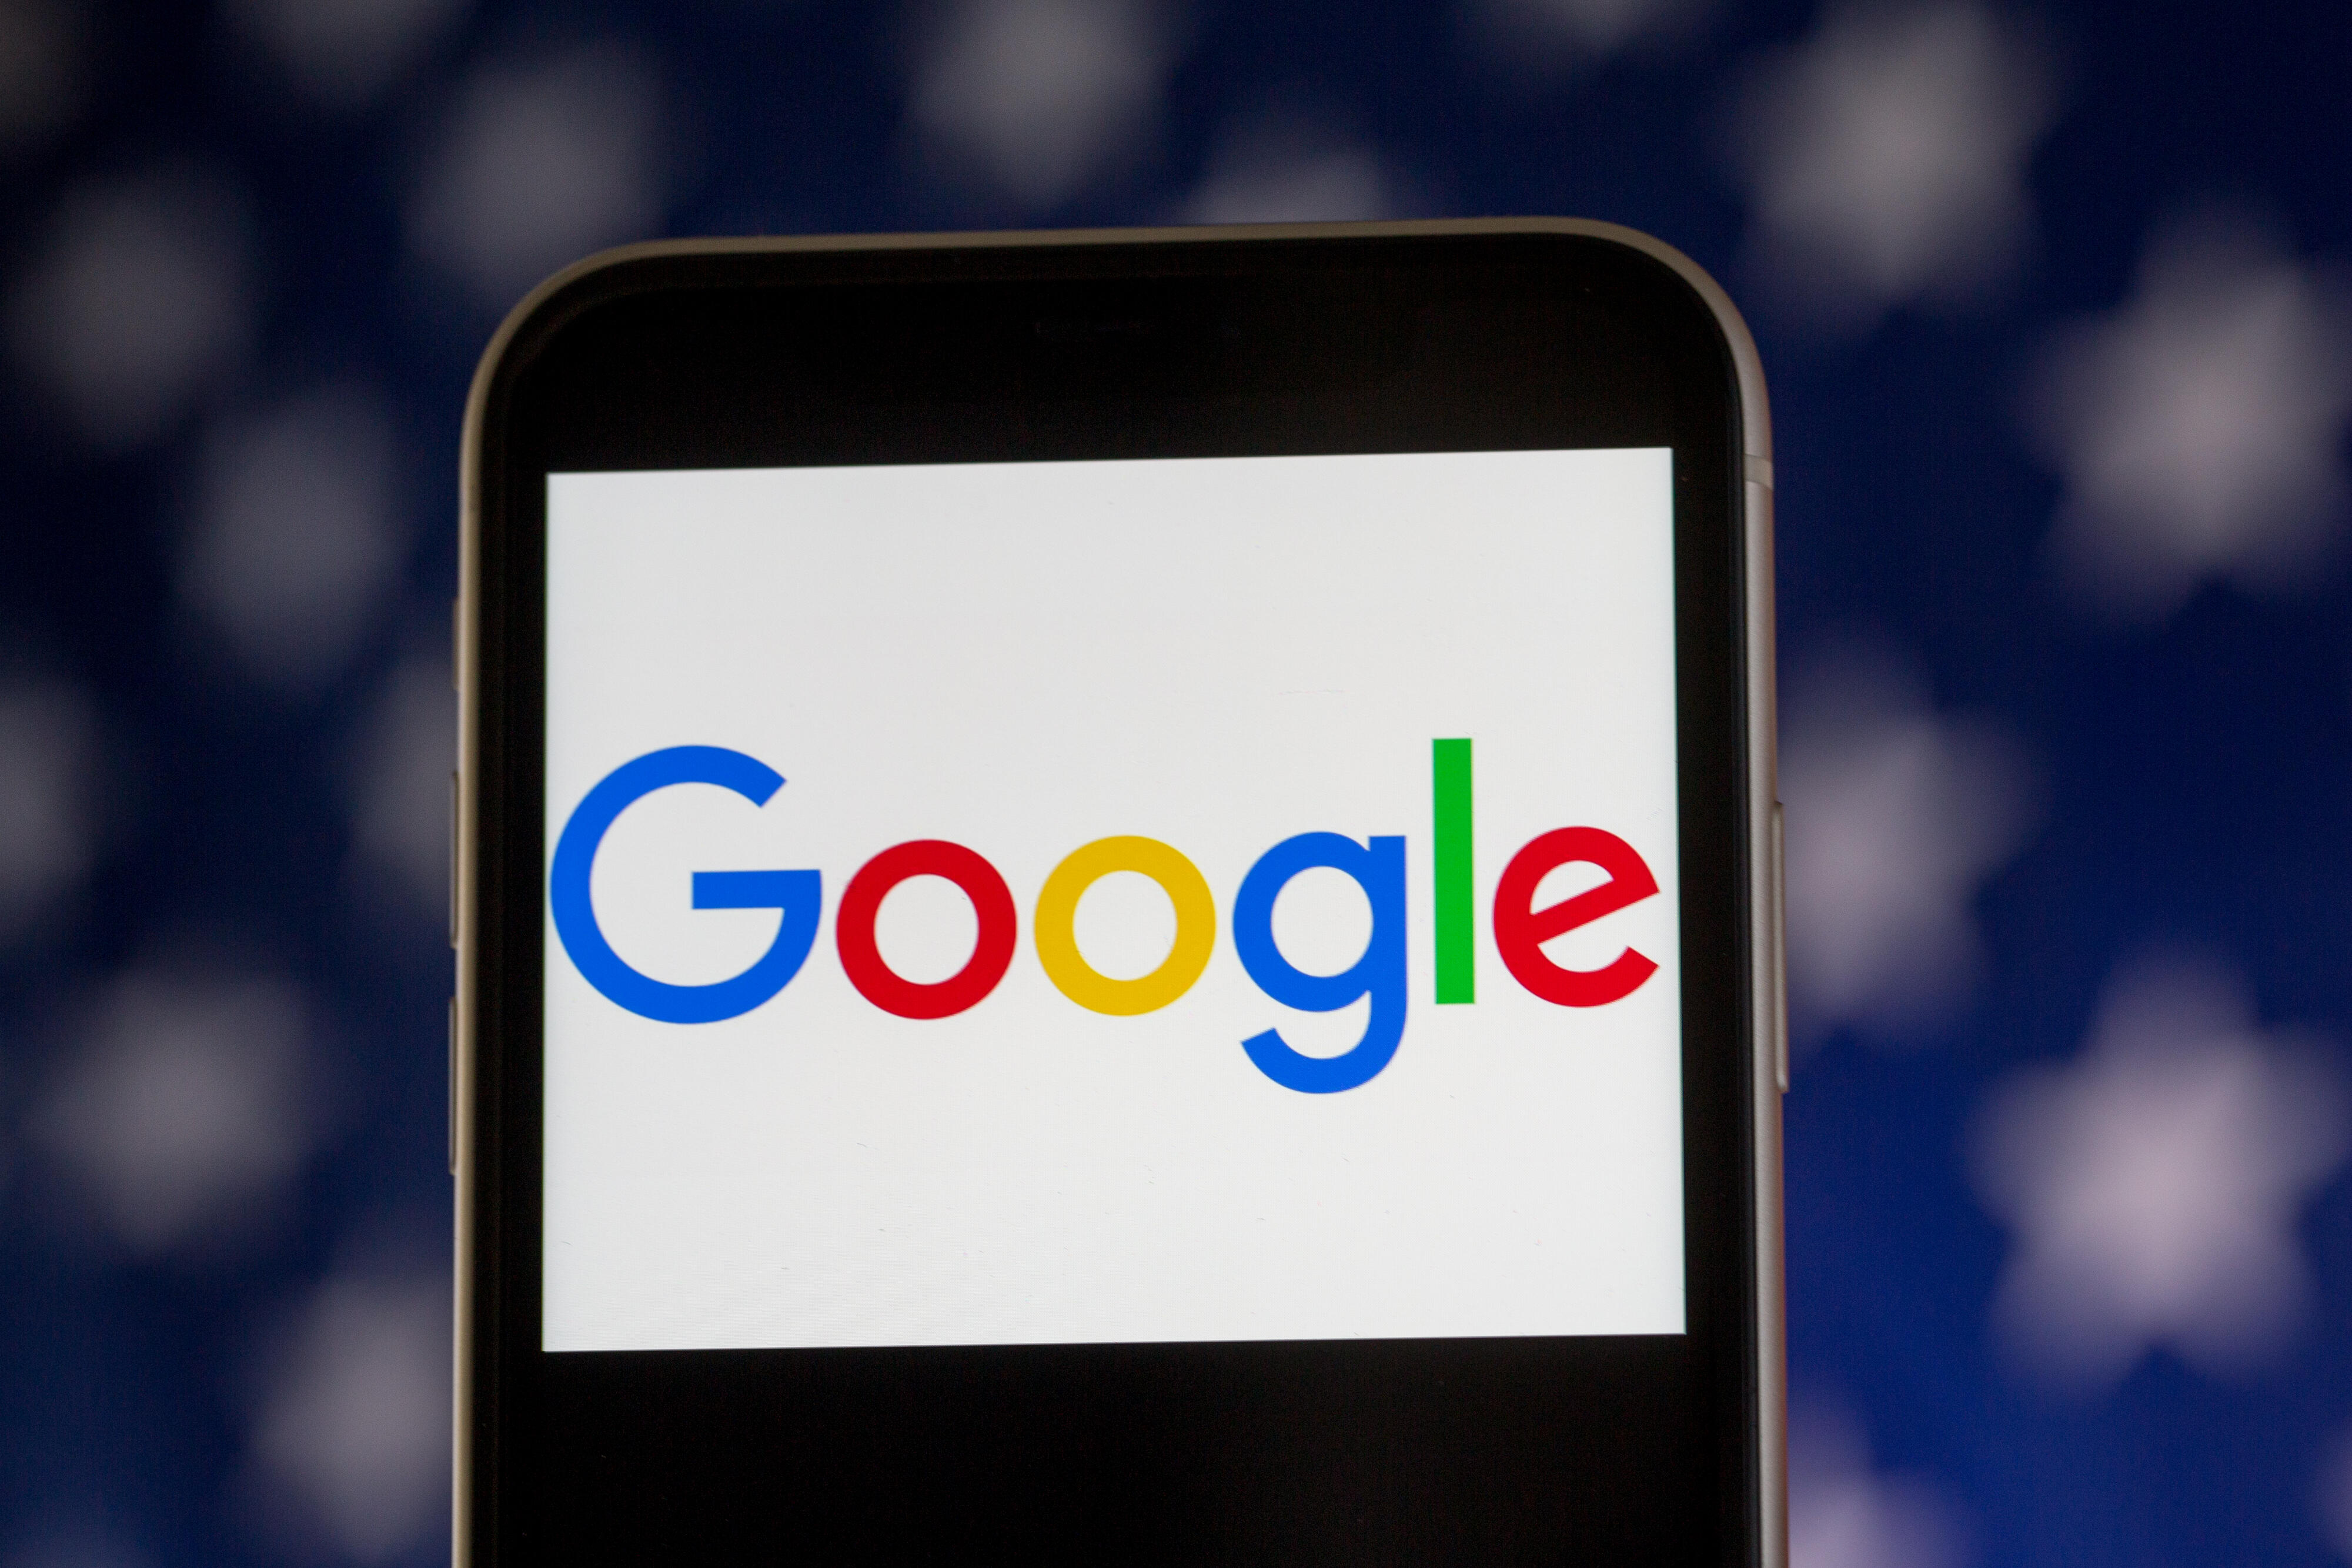 Google has stopped responding to data requests from Hong Kong authorities